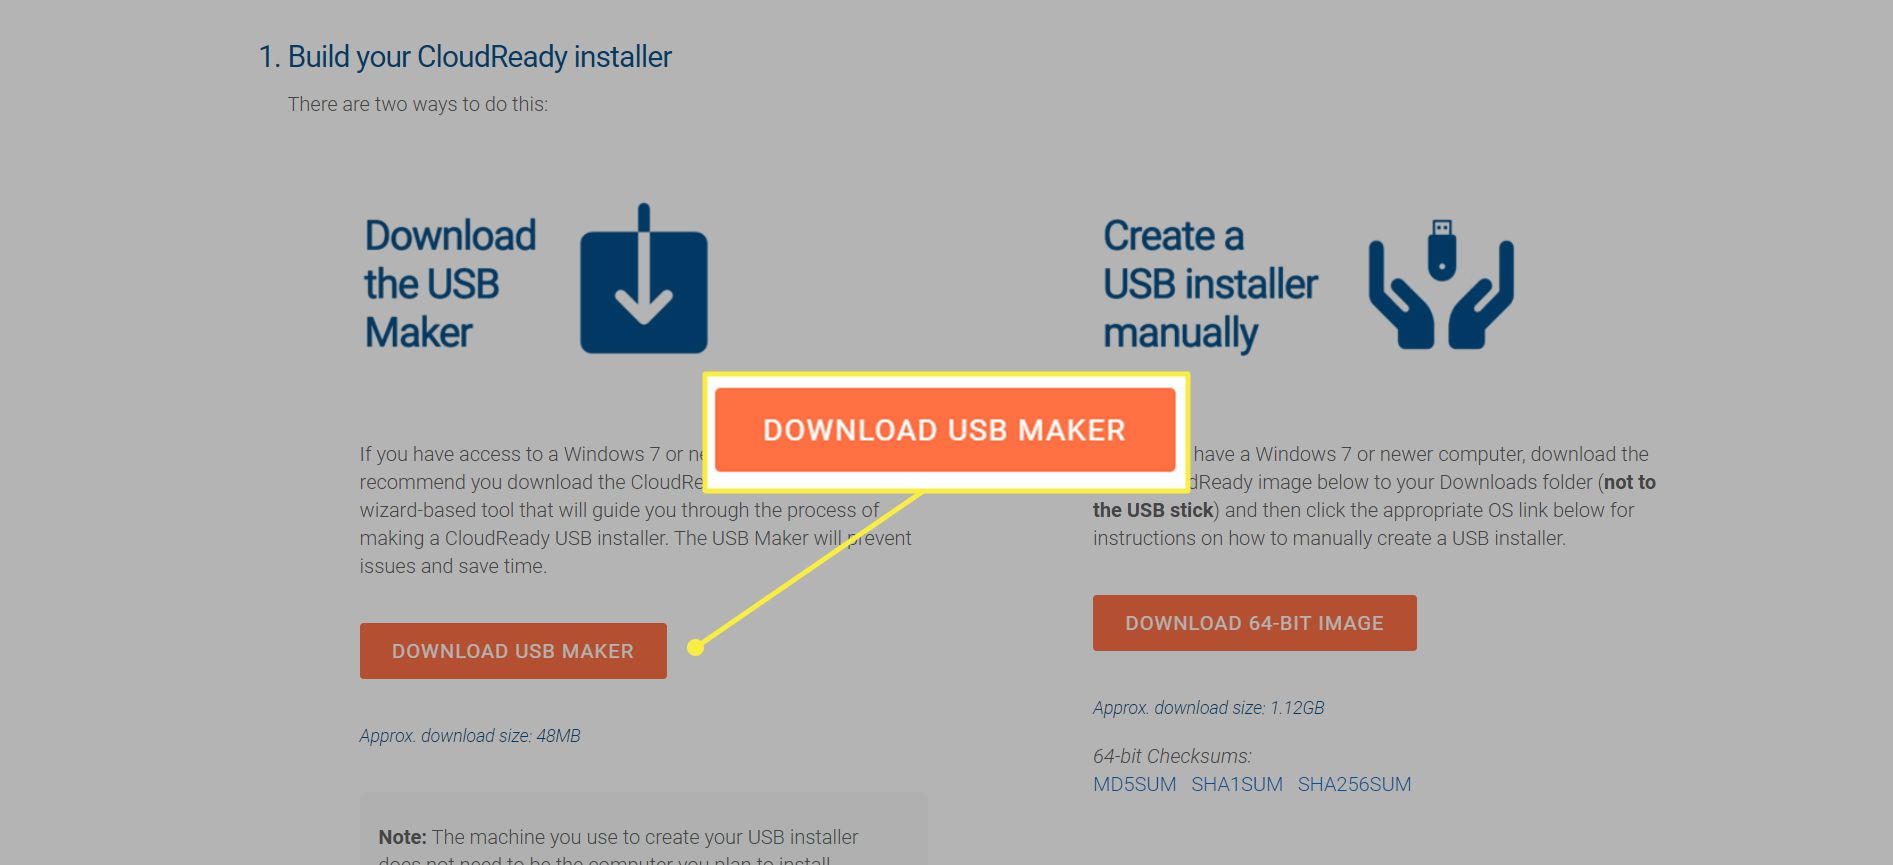 Neverware website with 'Download USB Maker' button highlighted